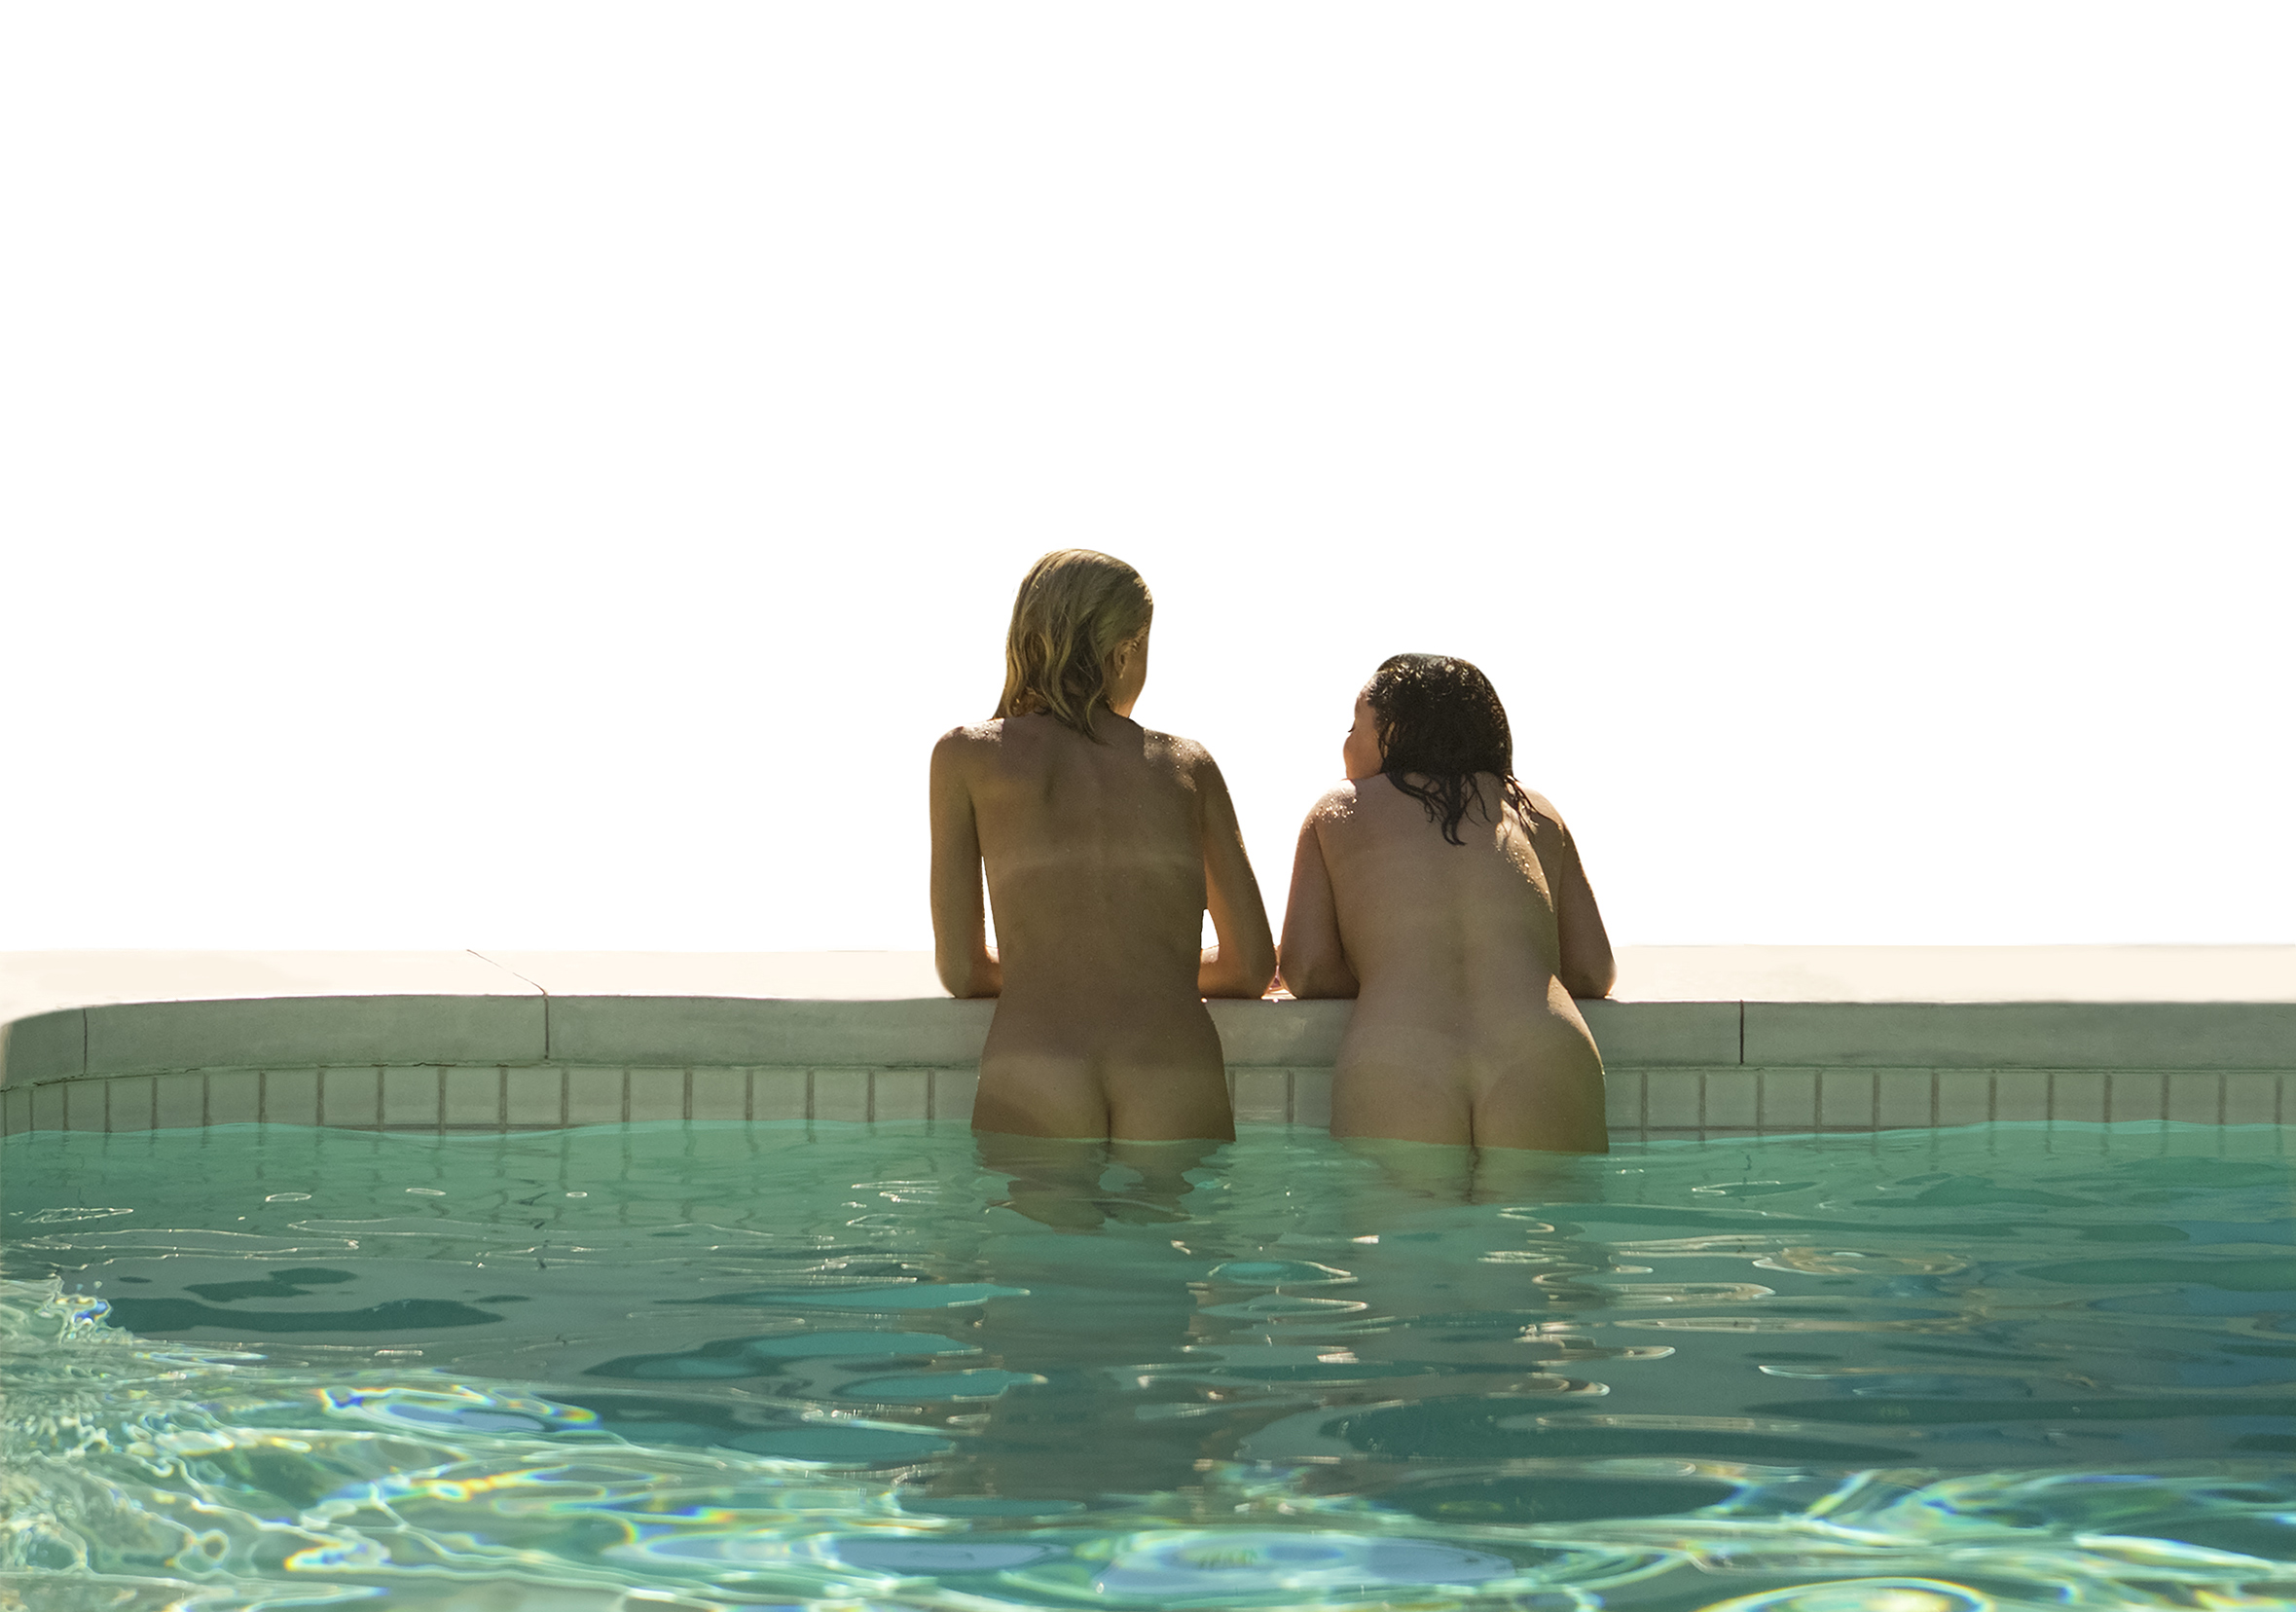 Two women in the pool